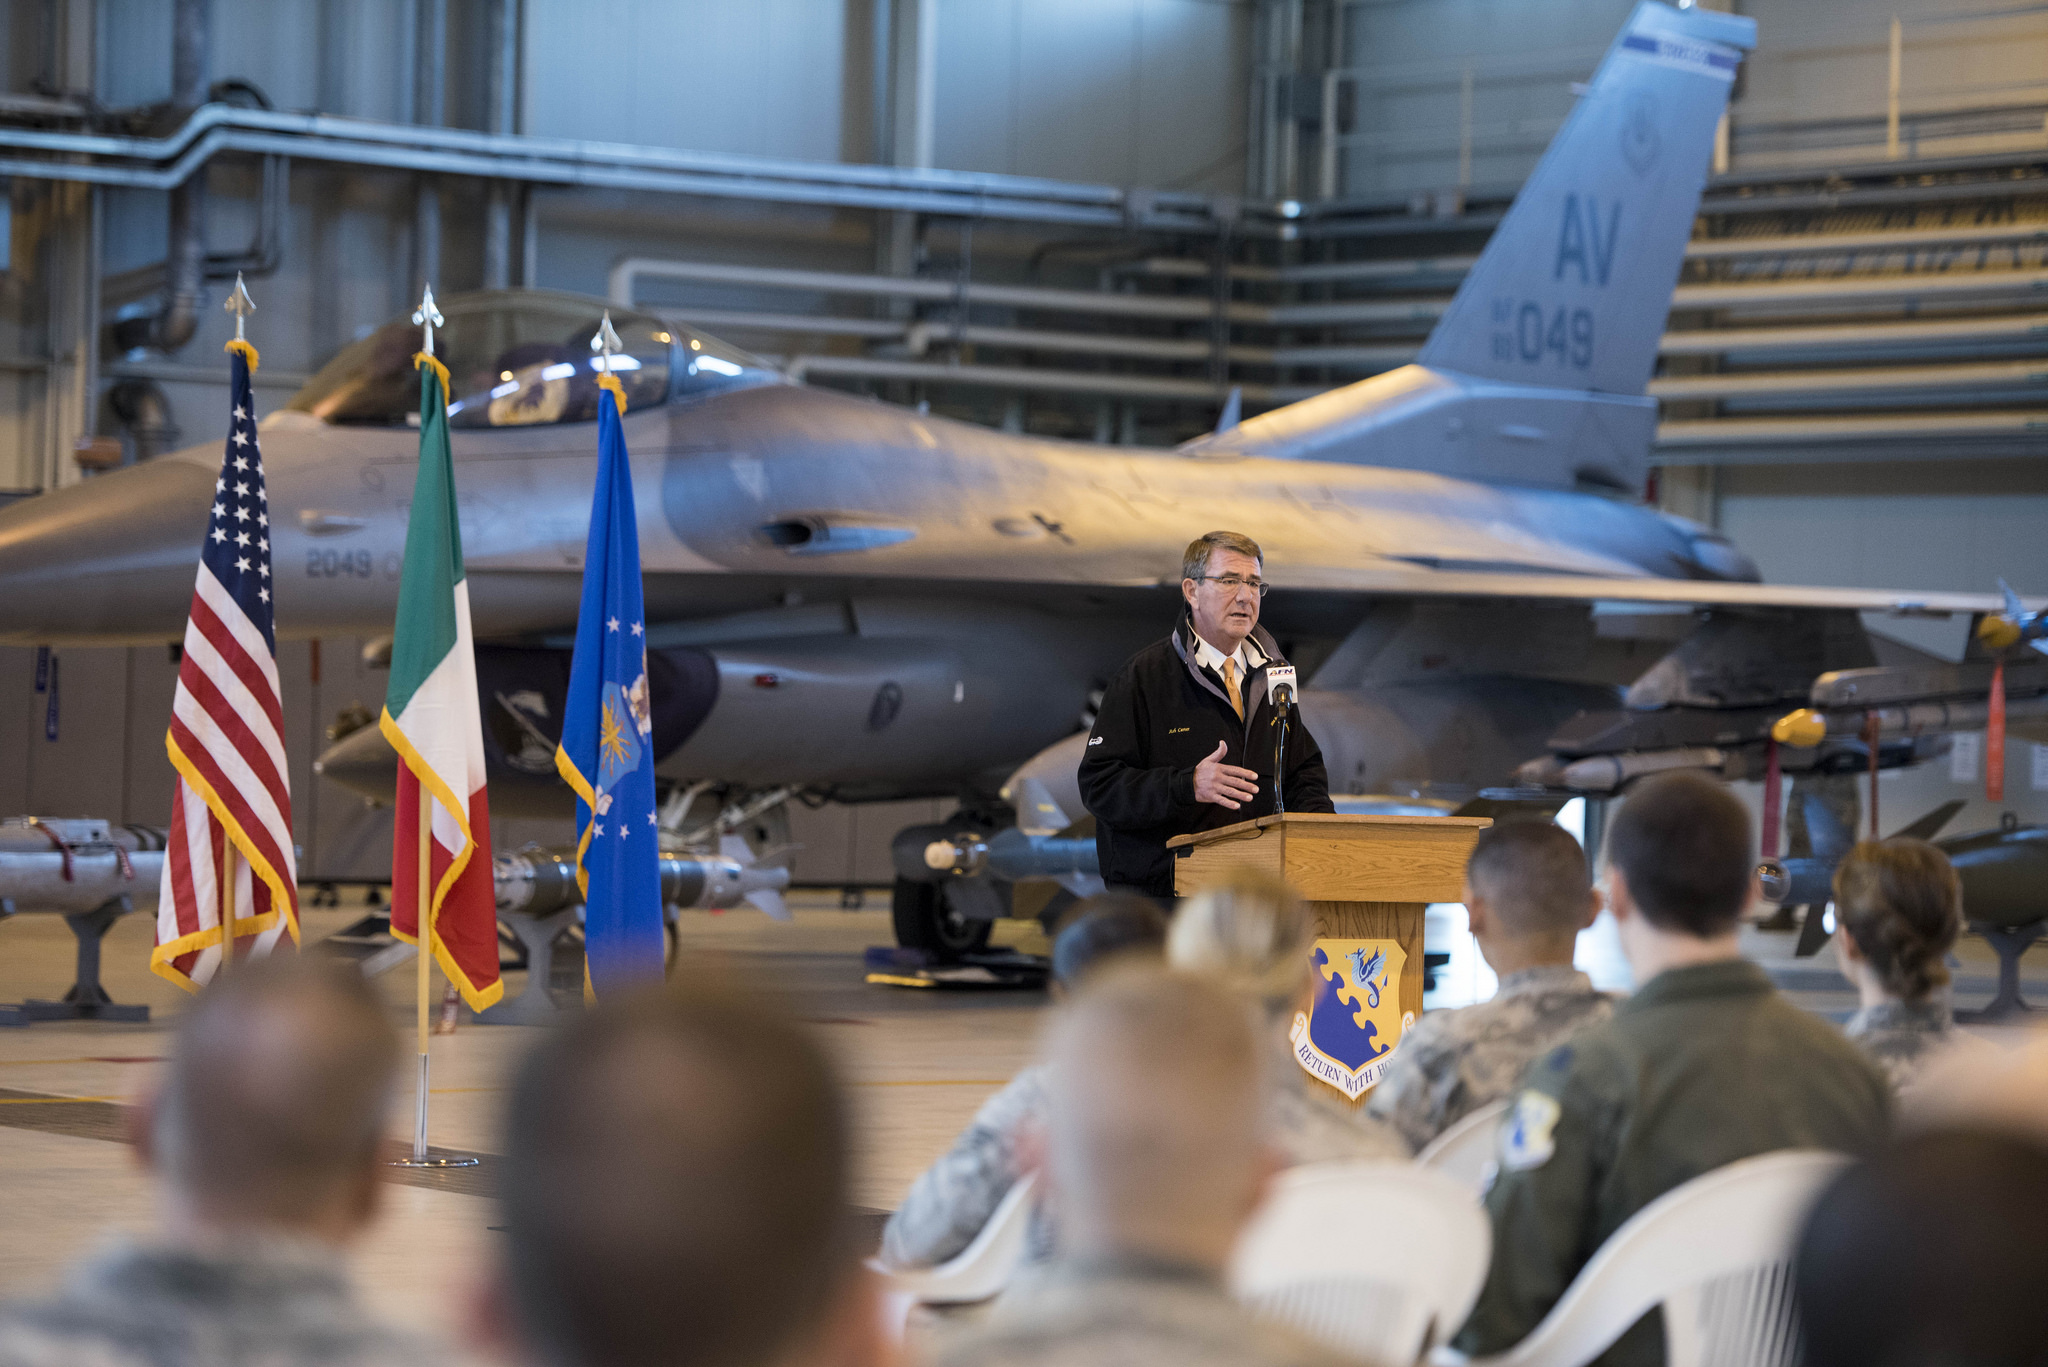 Defense Secretary Ash Carter speaks to airmen at Aviano Air Base, Italy, Dec. 13, 2016. DoD photo by Air Force Tech. Sgt. Brigitte N. Brantley